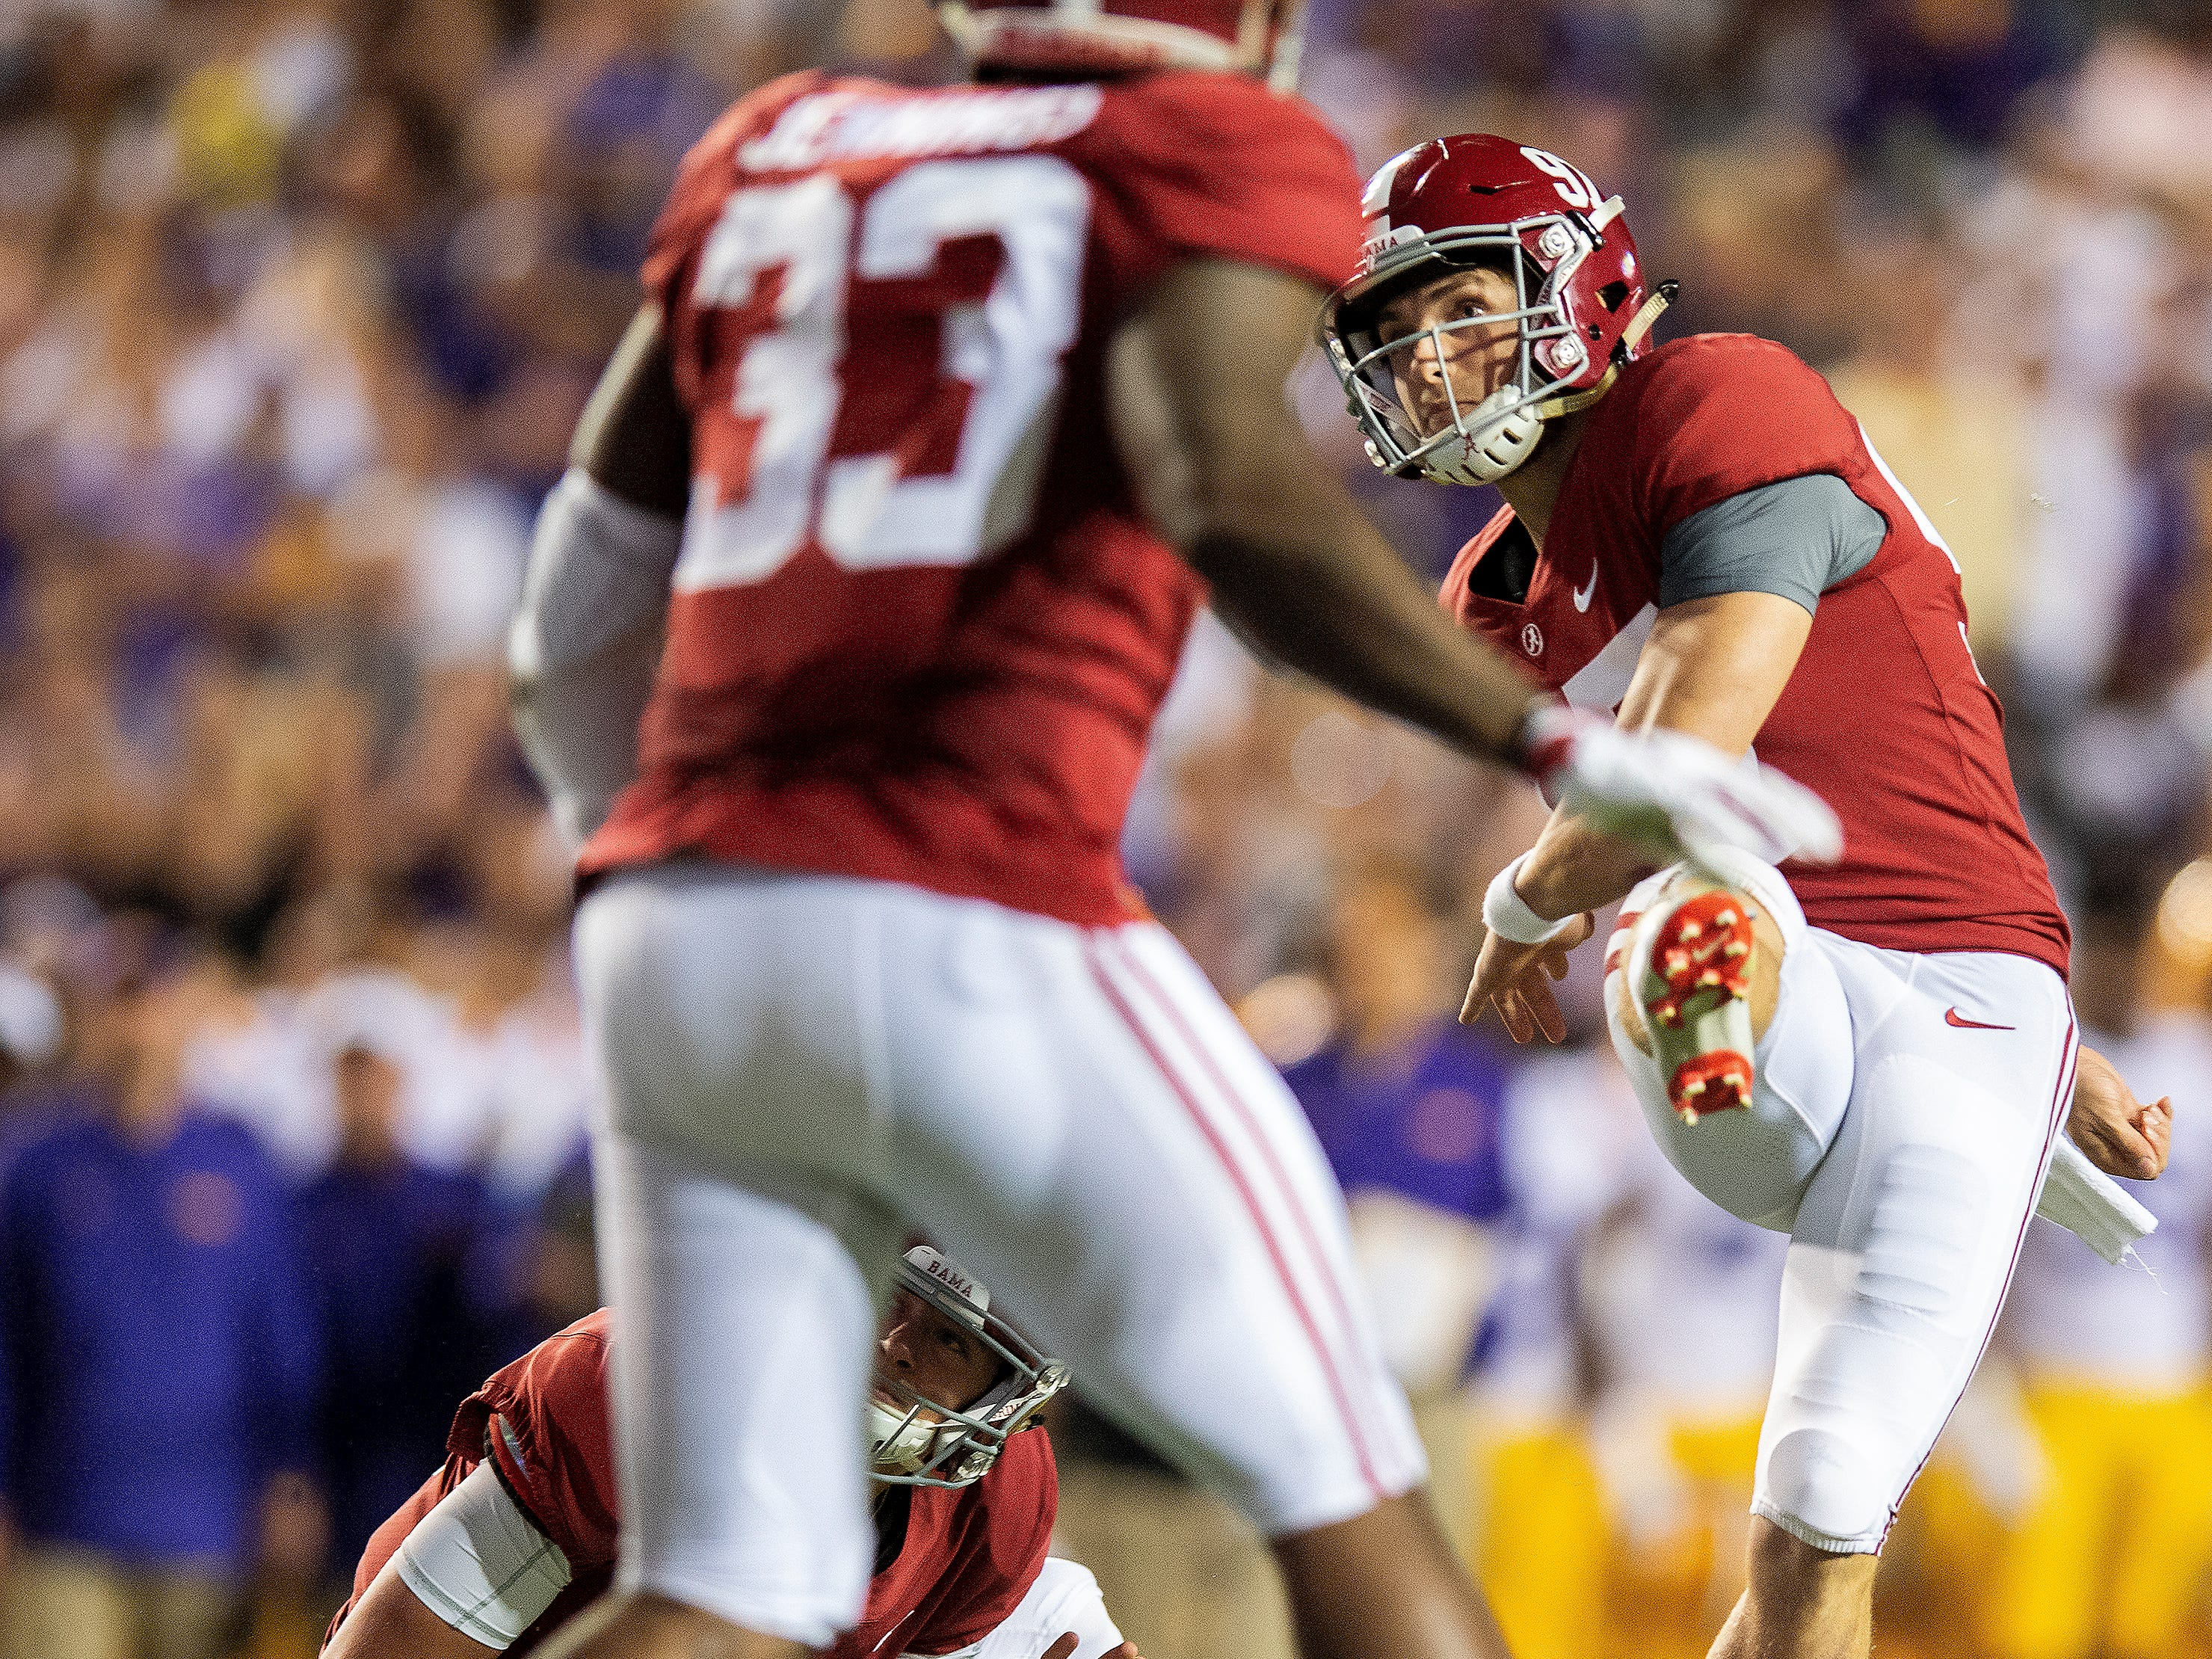 Alabama kicker Joseph Bulovas (97) kicks a field goal in first half action against LSU at Tiger Stadium in Baton Rouge, La., on Saturday November 3, 2018.